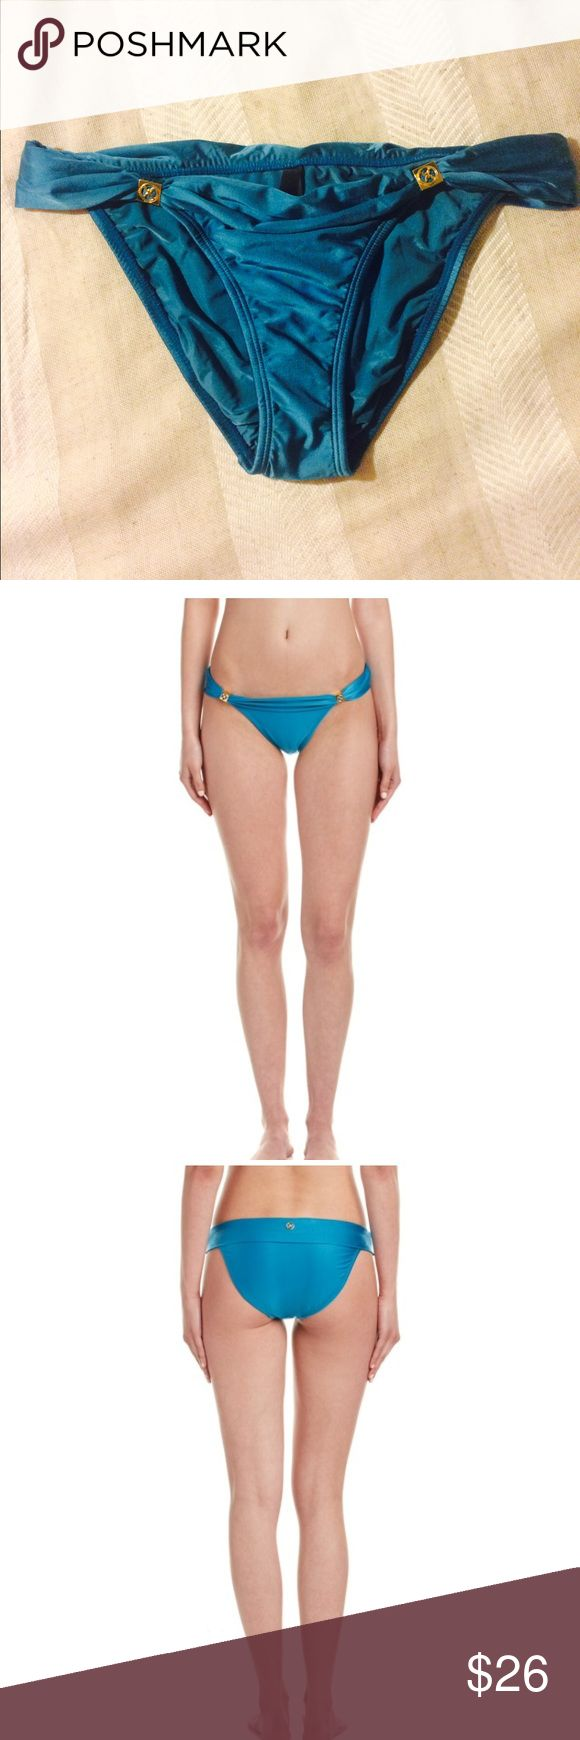 NWT Vix Bikini Bottoms Gorgeous teal colored bikini bottoms from Vix. Gold accent details and moderate bum coverage. Cut of these bottoms are super flatters and sides can be worn on different spots on the hip. Brand new, never worn, hygienic liner intact. Vix Swim Bikinis